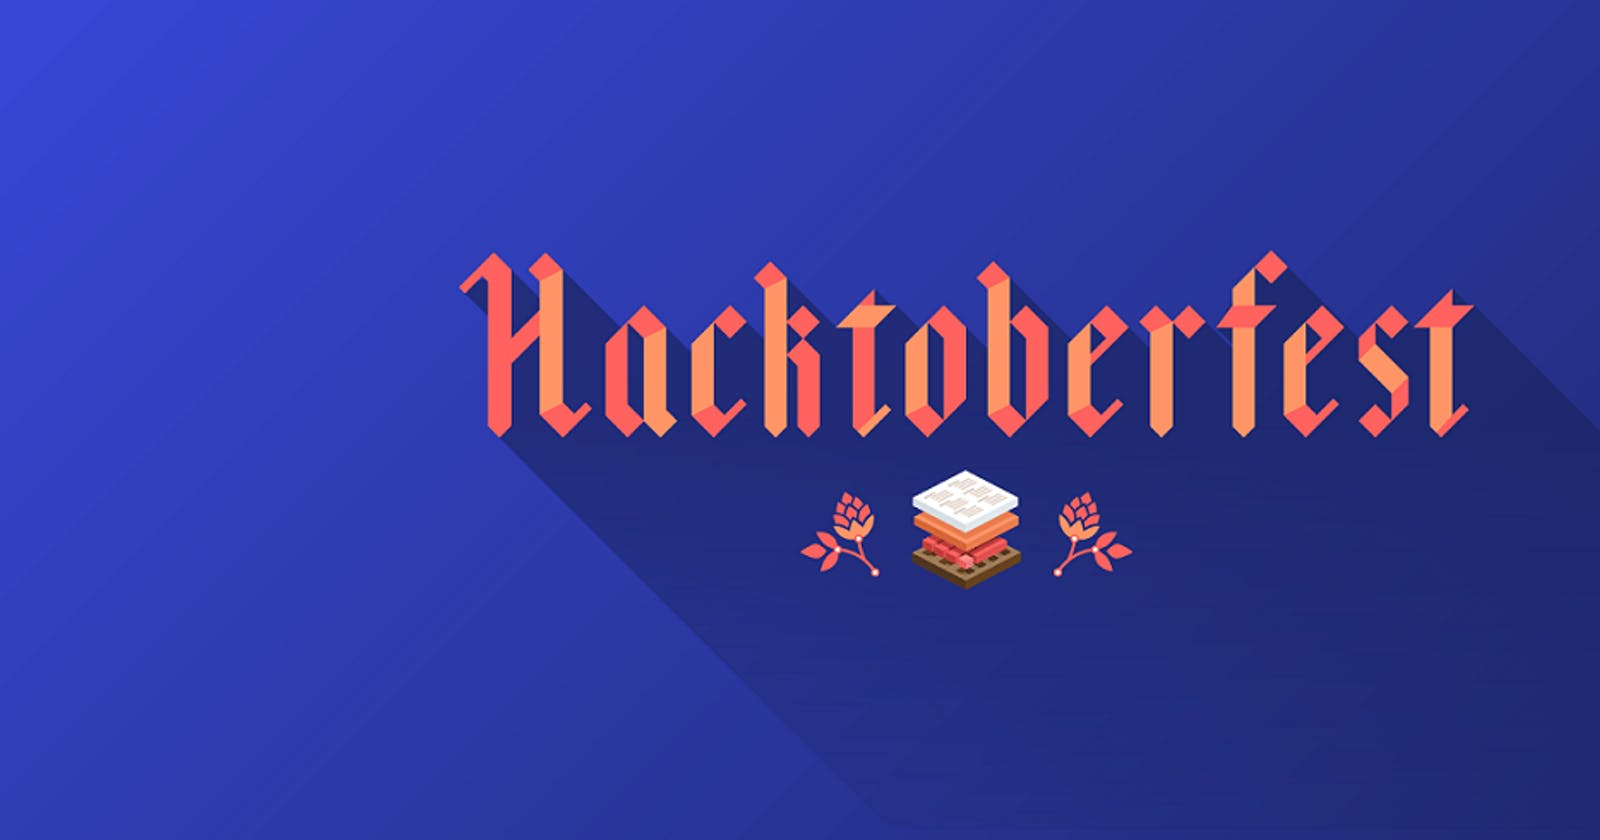 Starting with Open Source & Hacktoberfest. A 3-year review